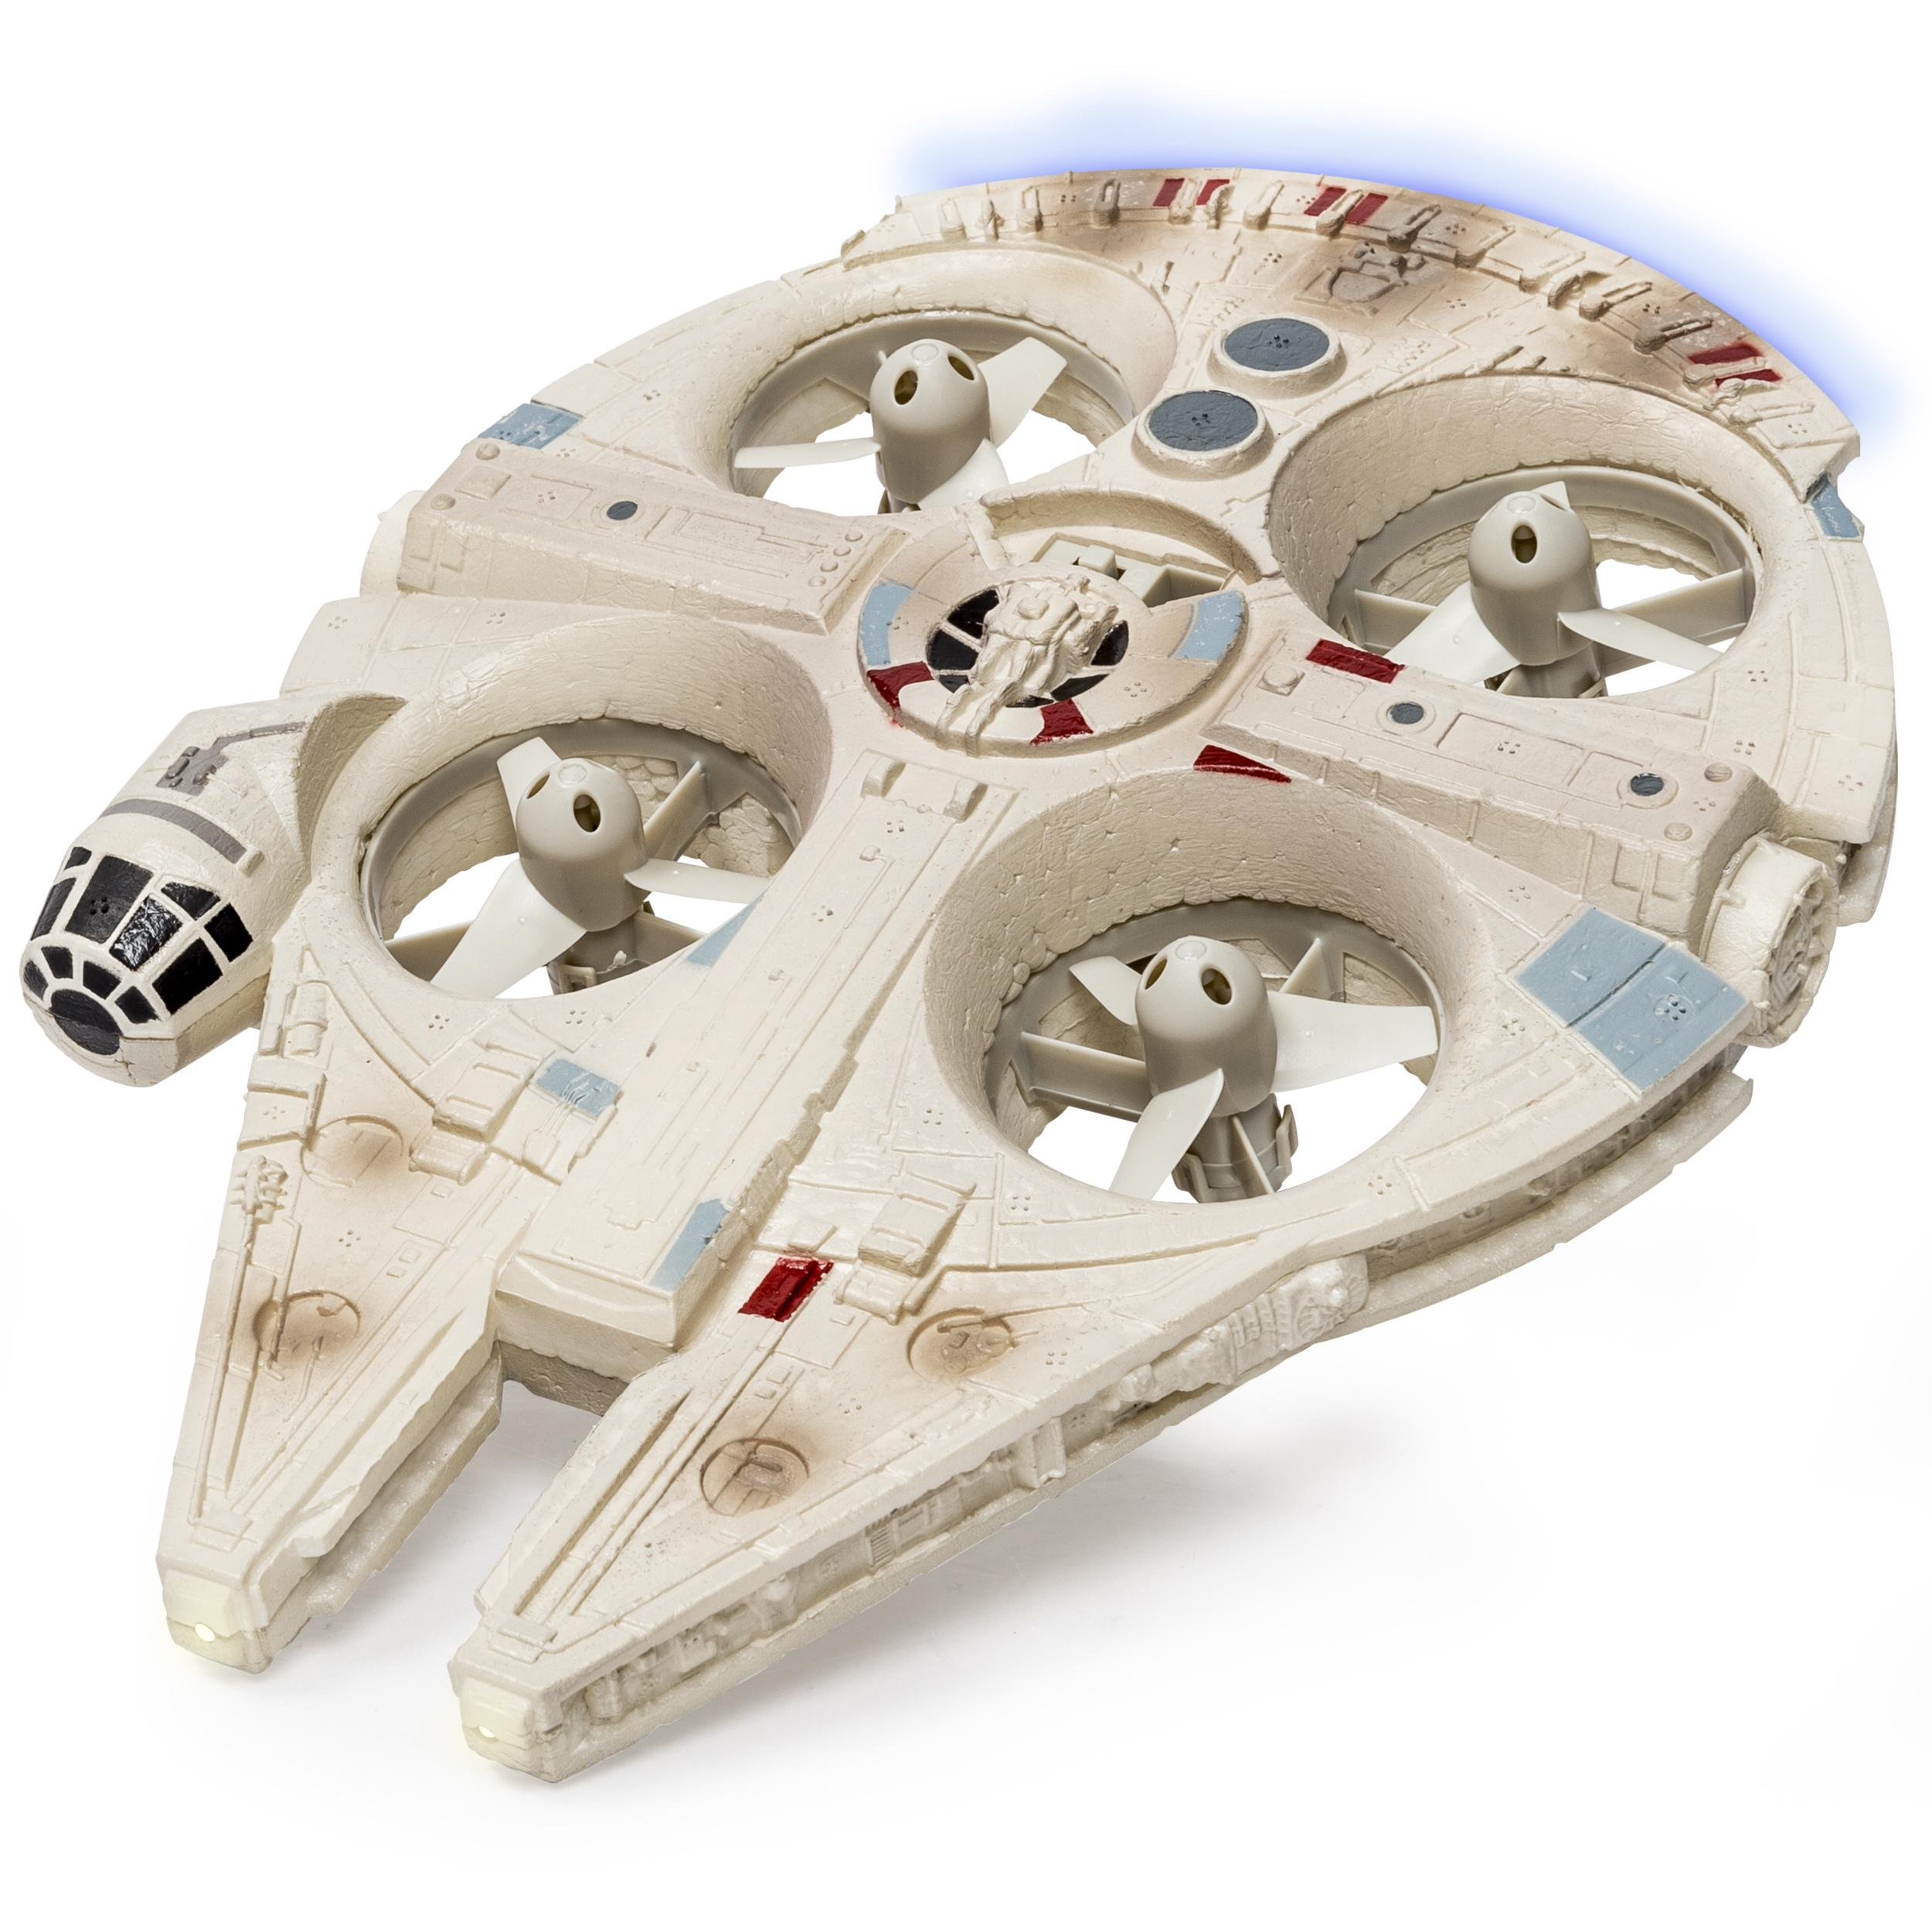 Remote Control Bb8 >> Amazon.com: Air Hogs Star Wars Remote Control Millennium Falcon Quad: Spin Master: Toys & Games